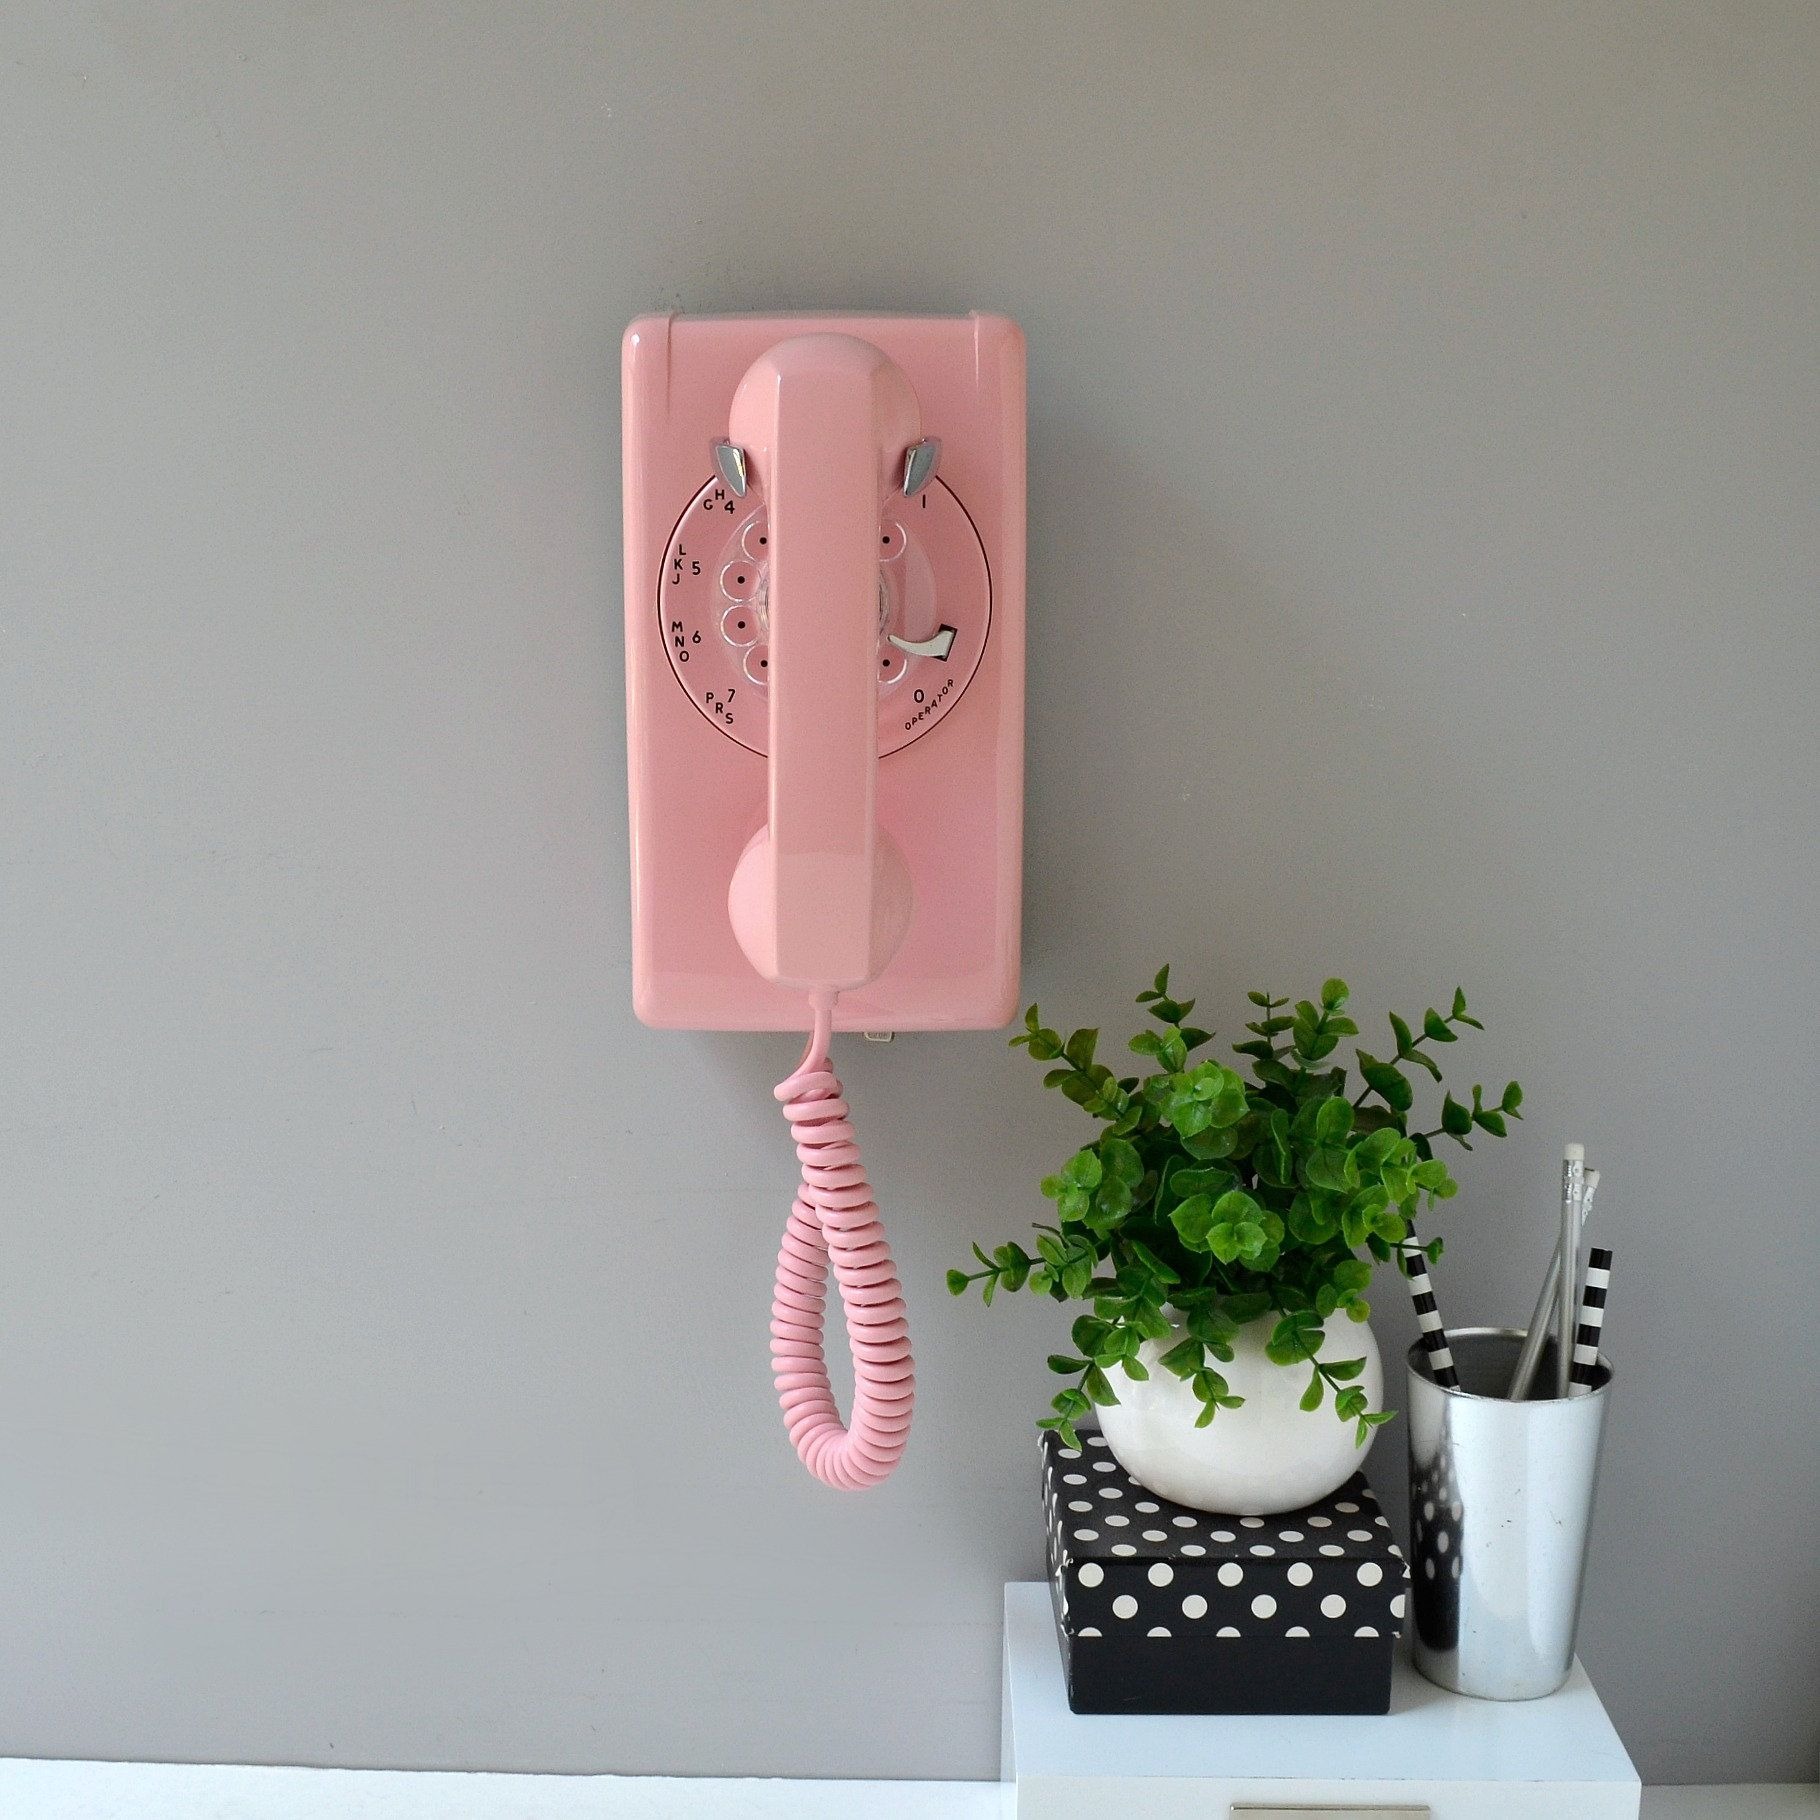 Pink Rotary Wall Phone Vintage Wall Mount Telephone Working Rotary Wall Phone Bubblegum Pink Retro Phone Vintage Phone Vintage Phones Retro Phone Wall Phone